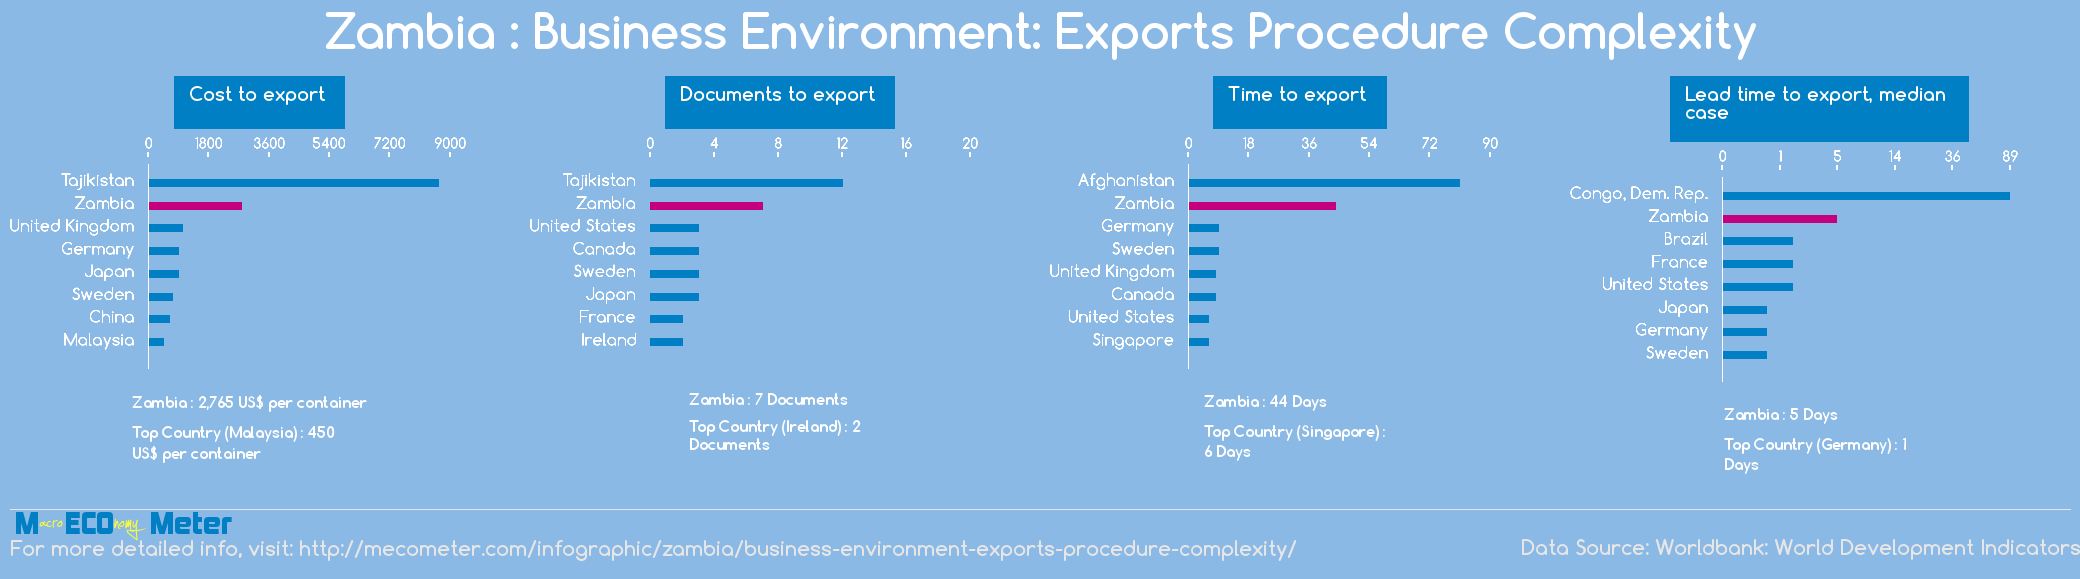 Zambia : Business Environment: Exports Procedure Complexity